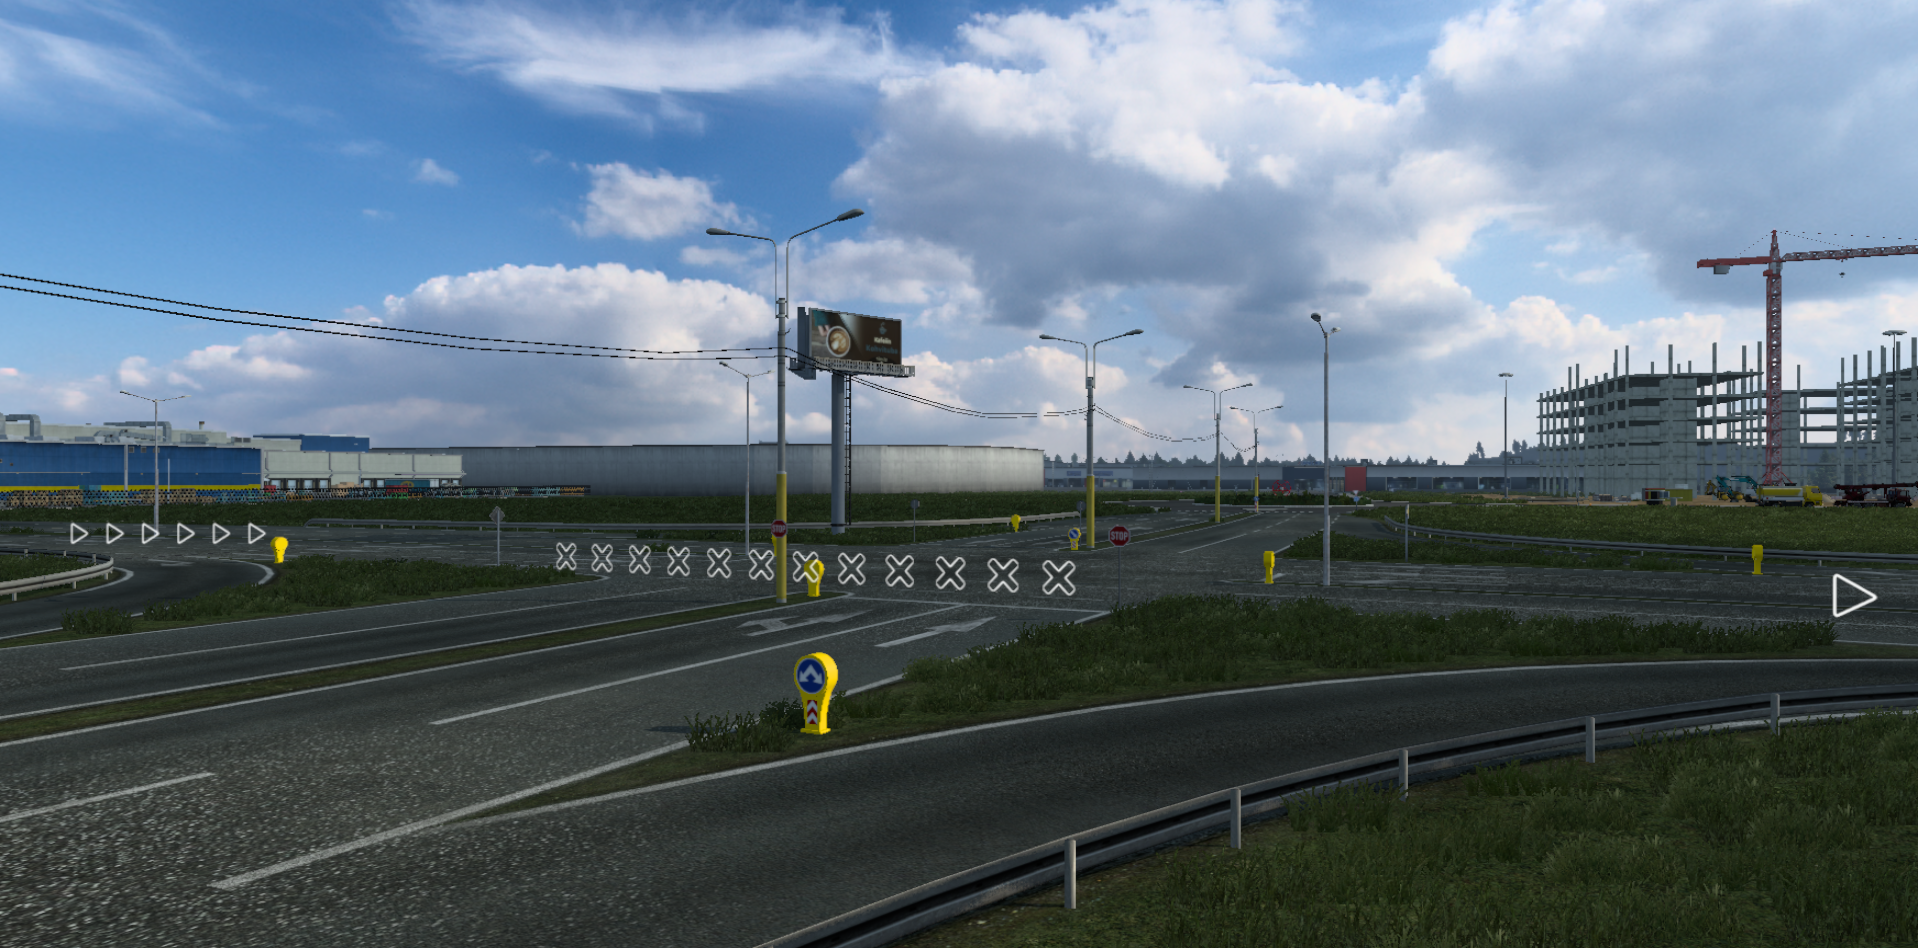 ets2_20210606_172616_00.png